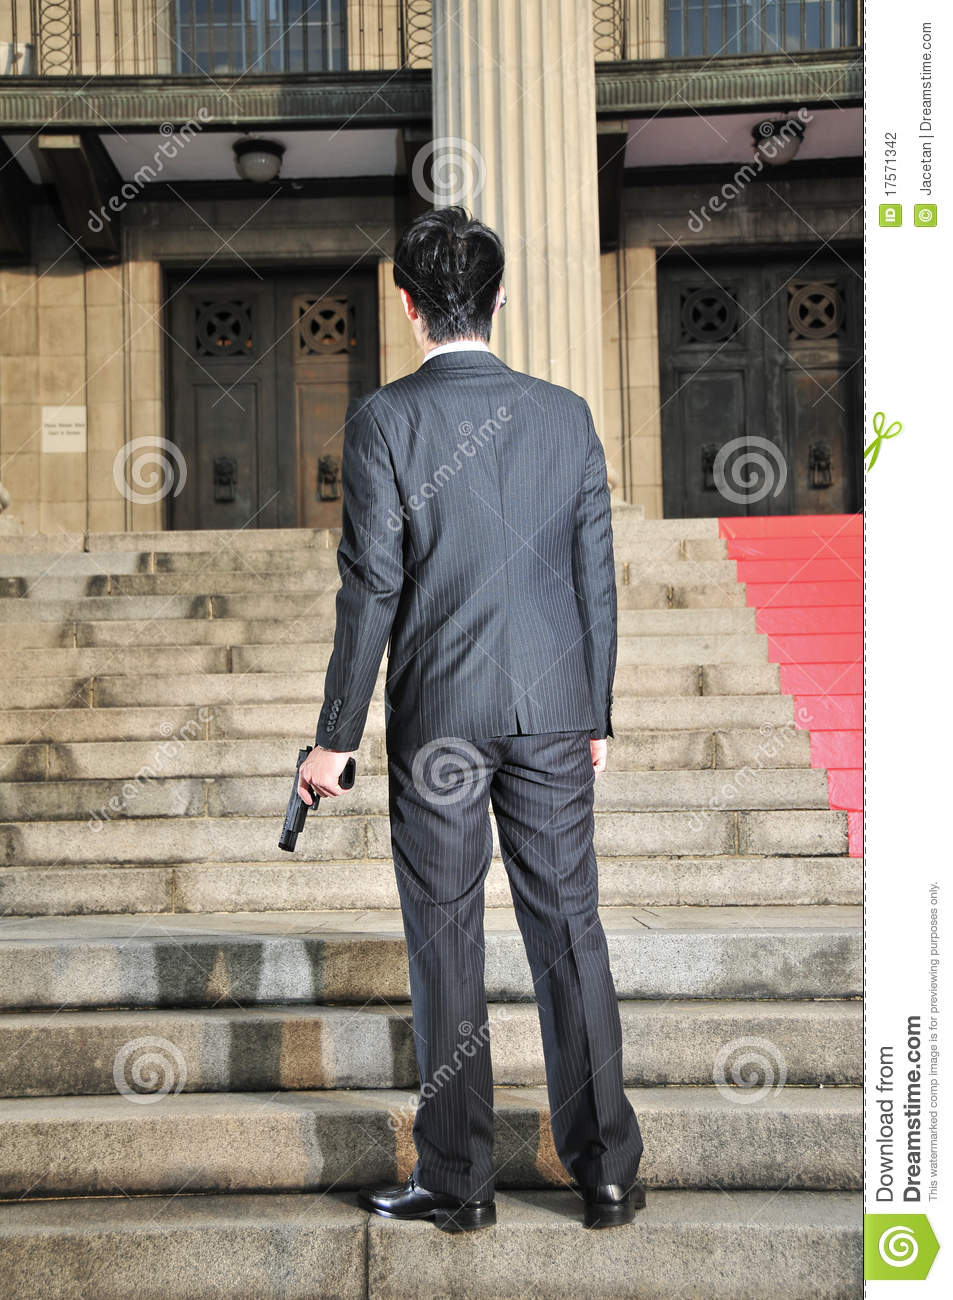 Extended Rear Facing >> Asian Man With A Gun With Back Facing Viewer 2 Stock Photography - Image: 17571342